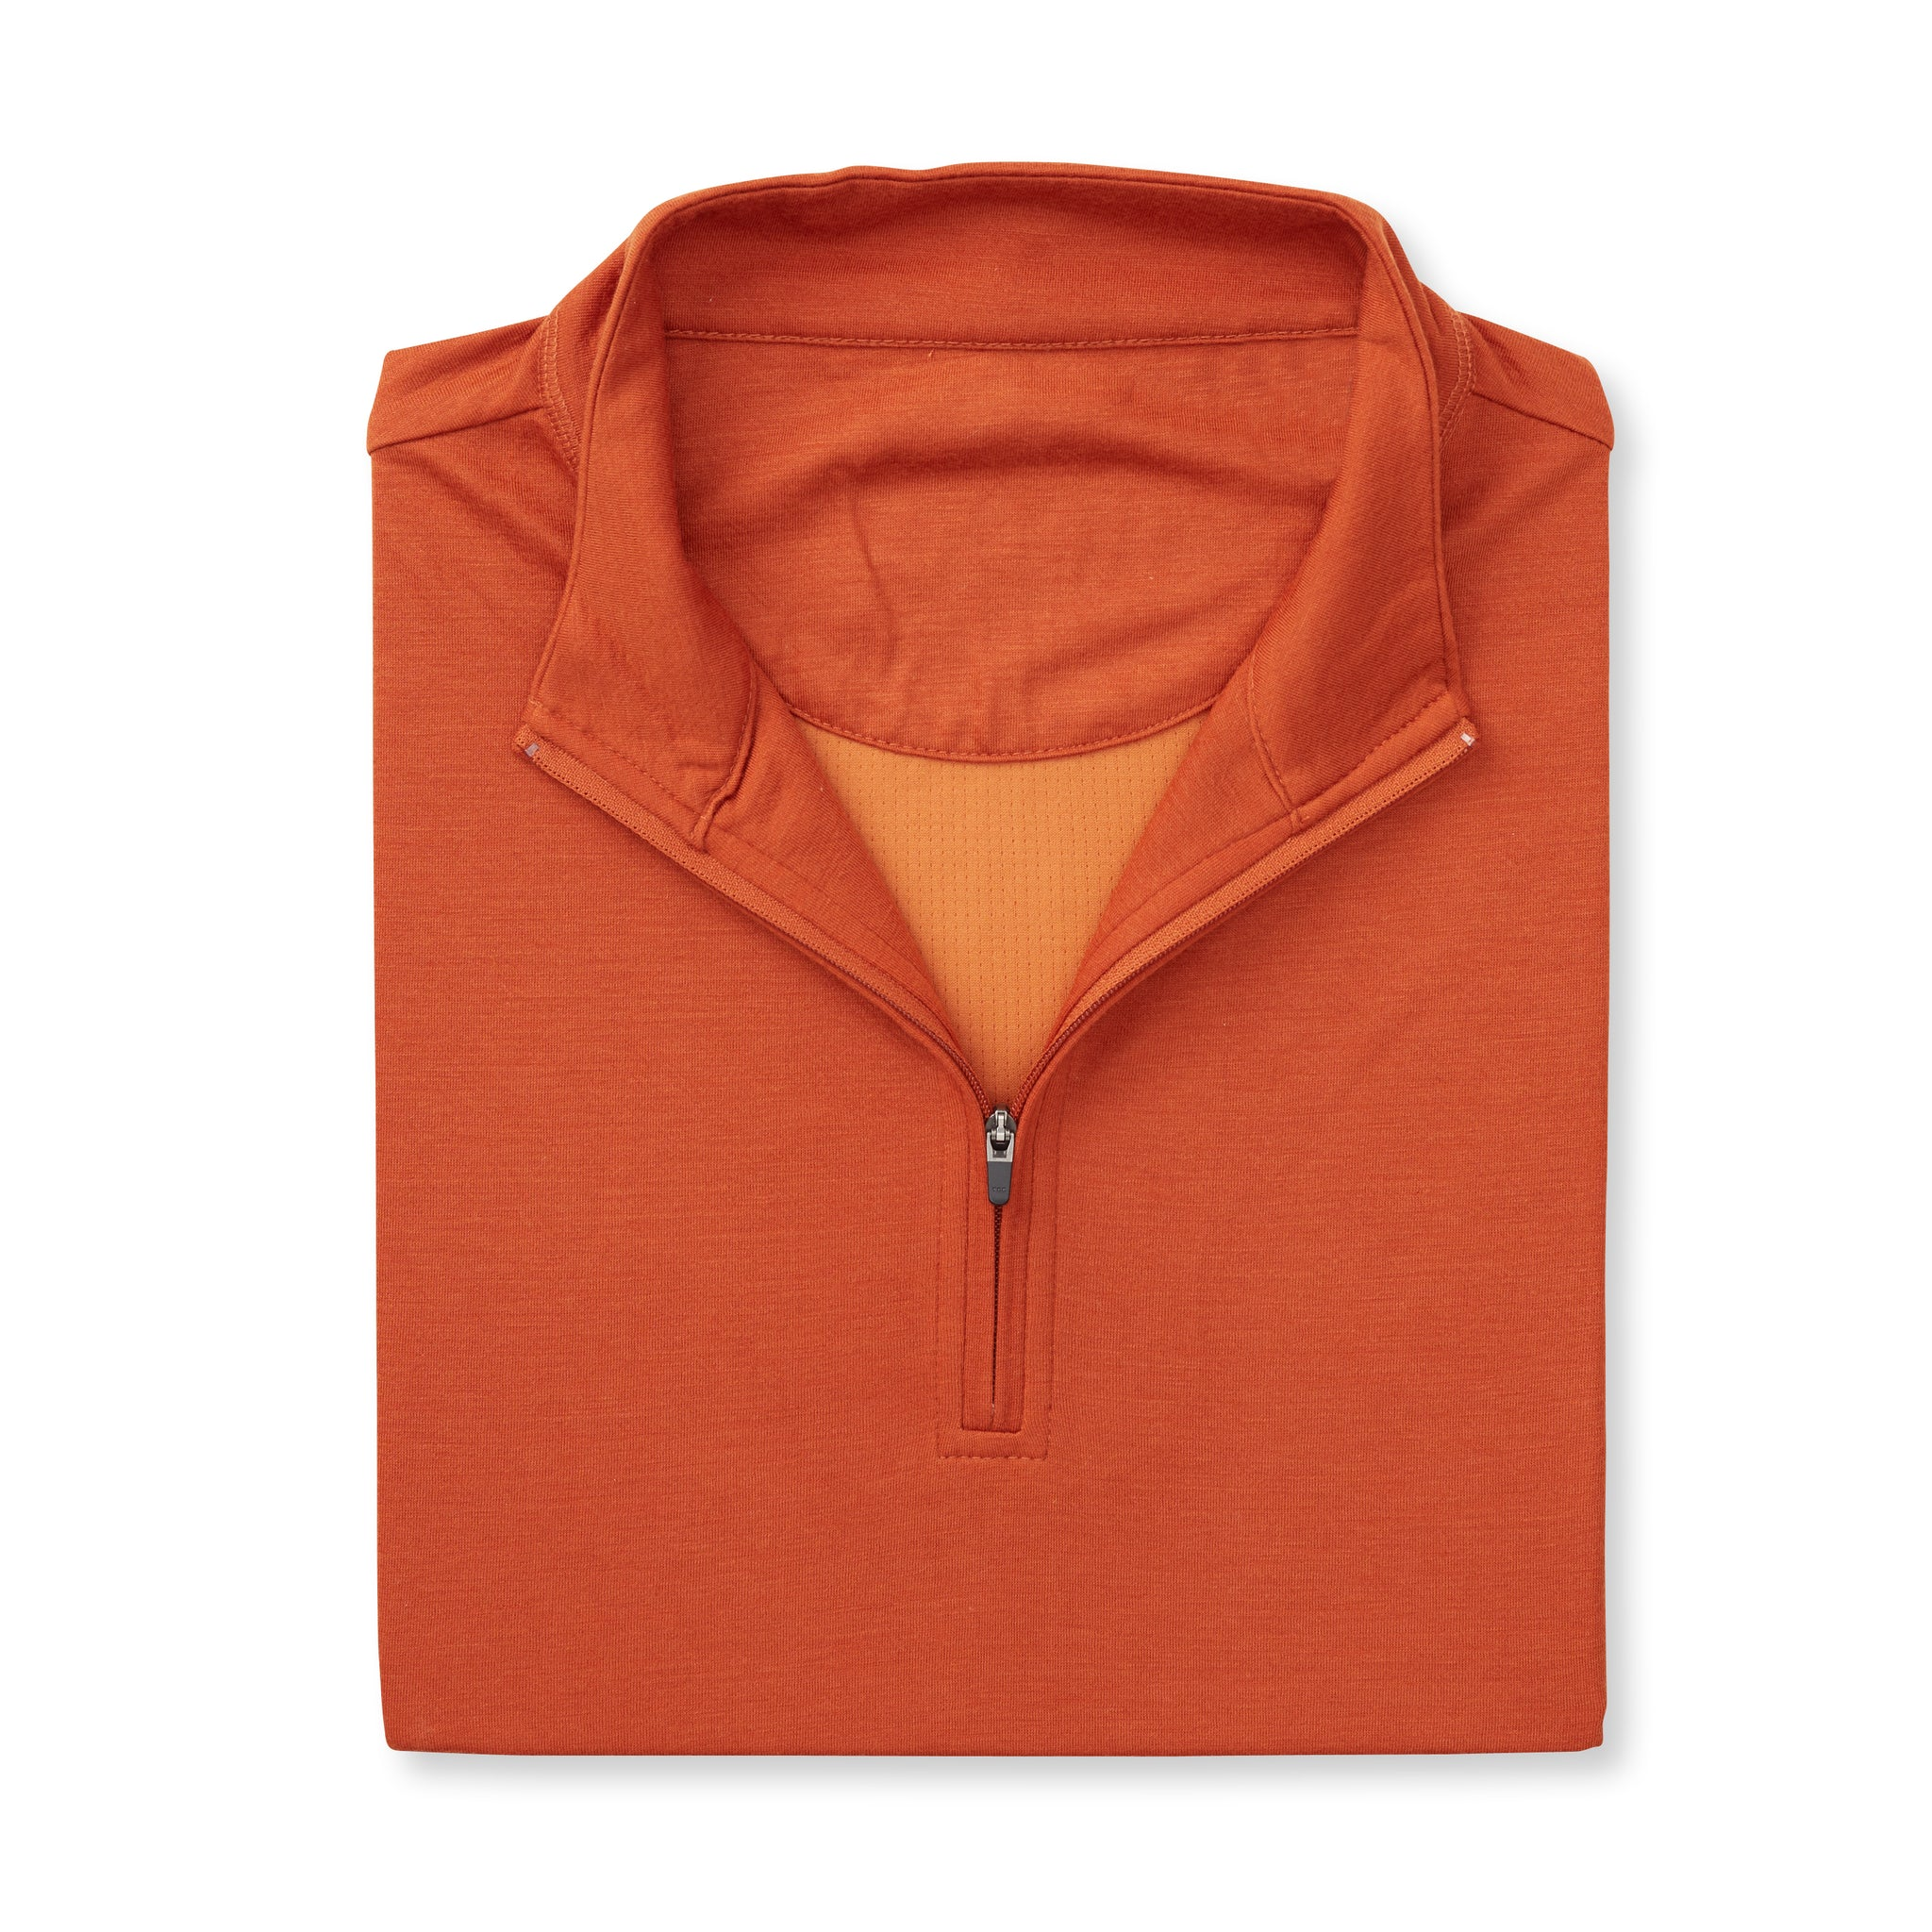 THE MATTHEWS LOFTEC HALF ZIP PULLOVER - Burnt Orange IS66308HZ